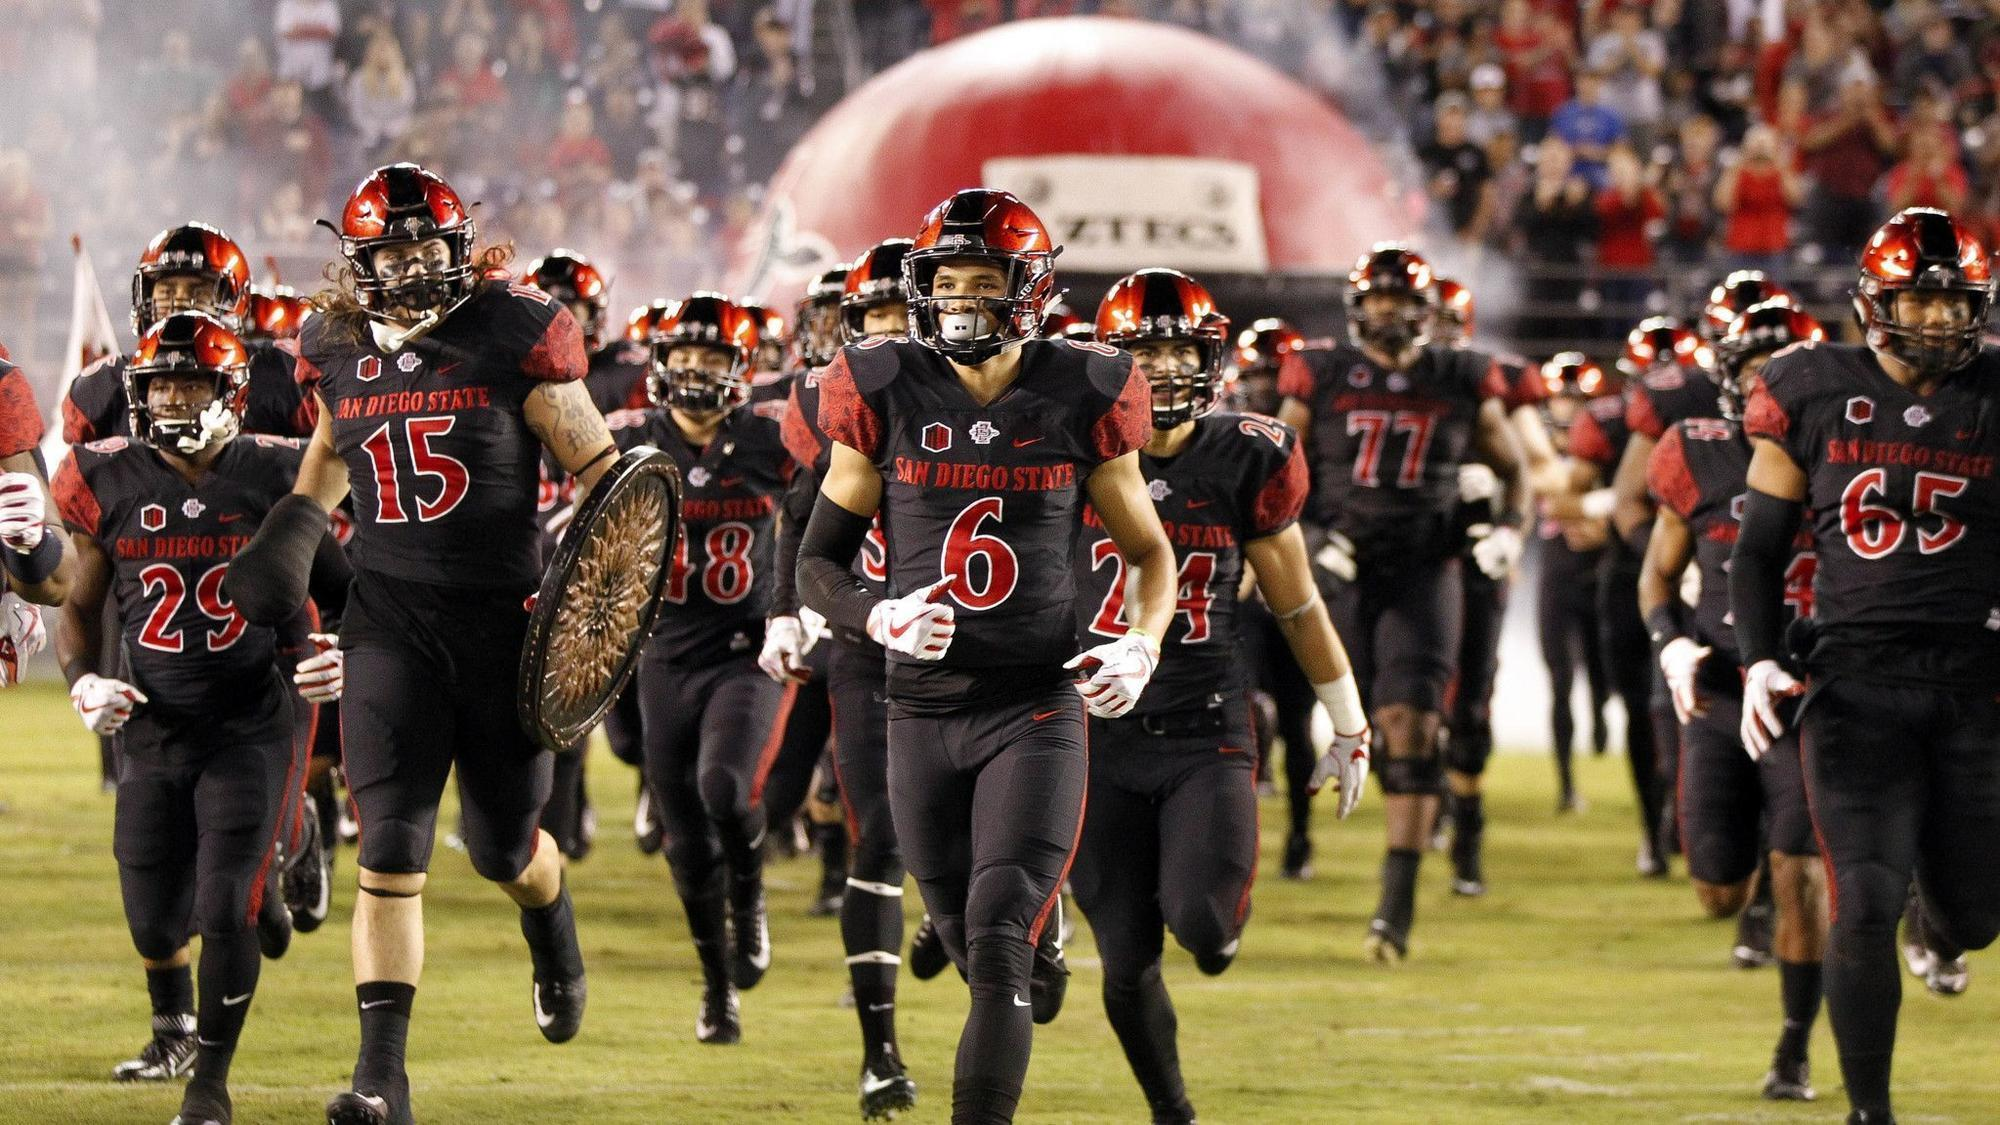 Sd-sp-azfoot-sdsu-football-on-campus-recruiters-make-talent-hunt-more-thorough-0419